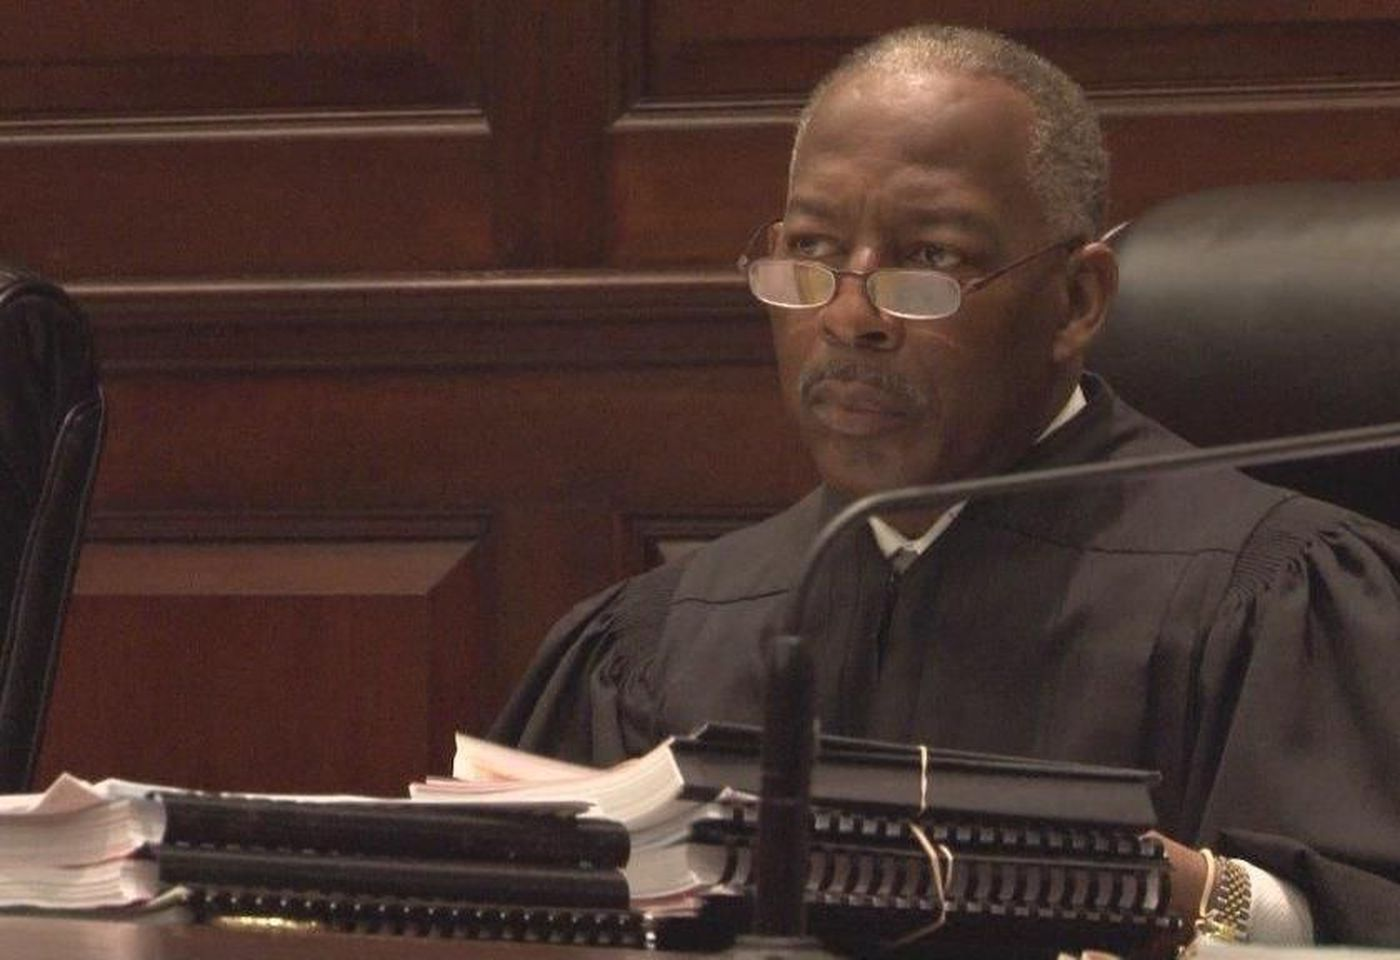 State AG could seek recusal of SC Supreme Court justice from appeals